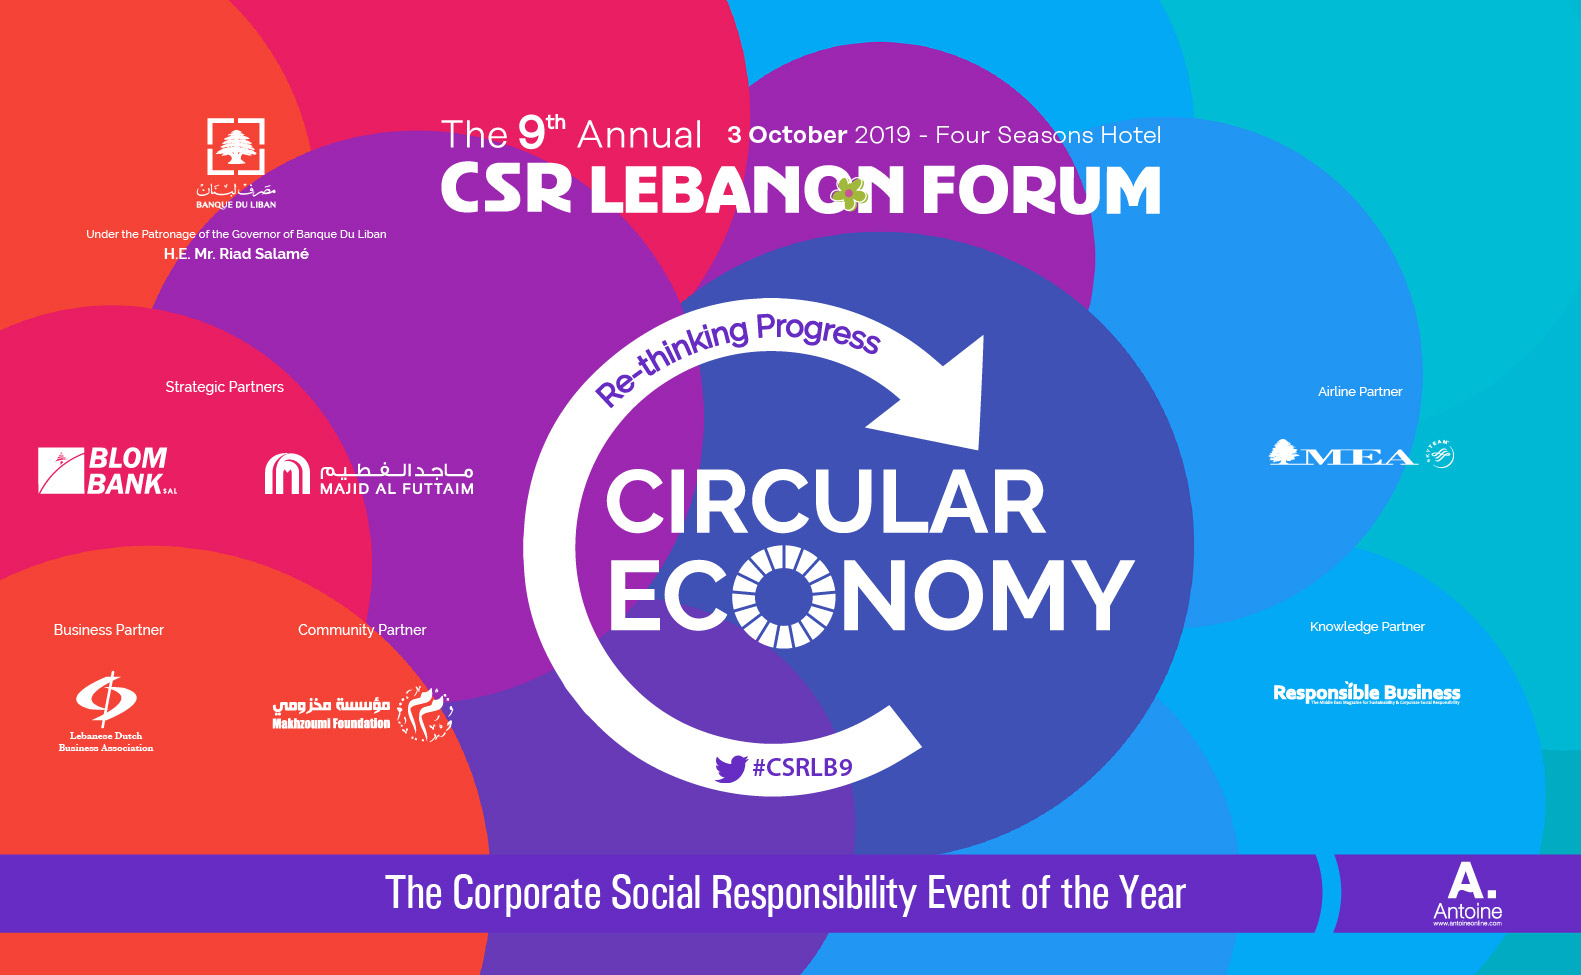 How CSR Can Serve as an Incubator for Business Ideas   CSR LEBANON